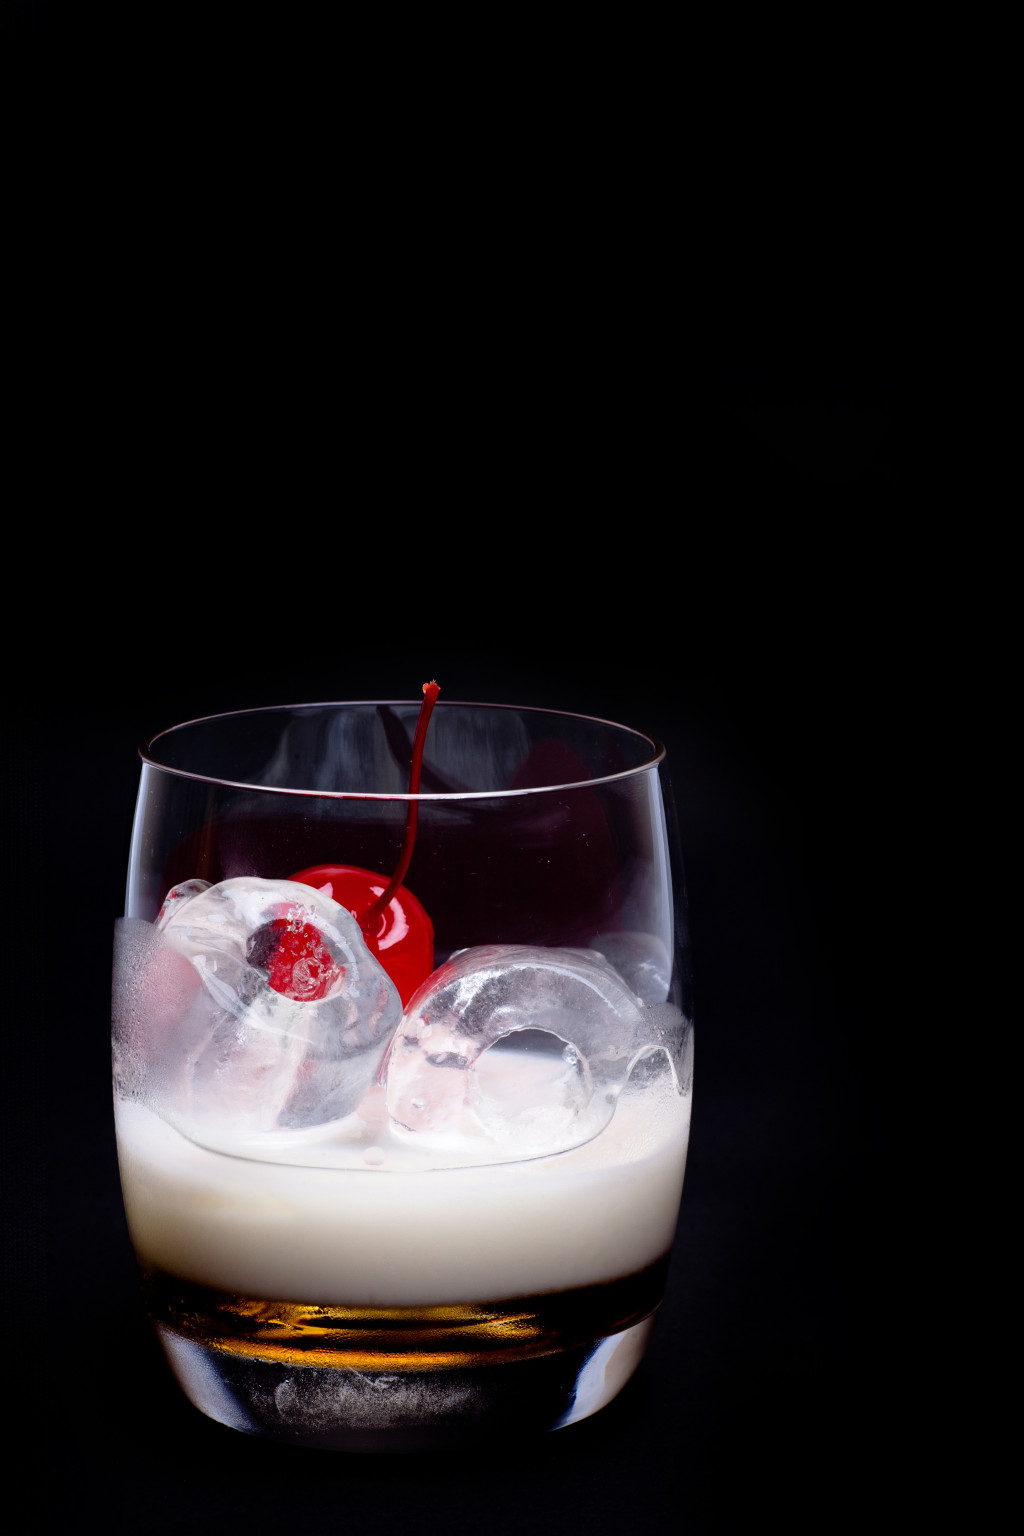 Homemade Kahlua (coffee liqueur) from scratch - with White Russian recipe.